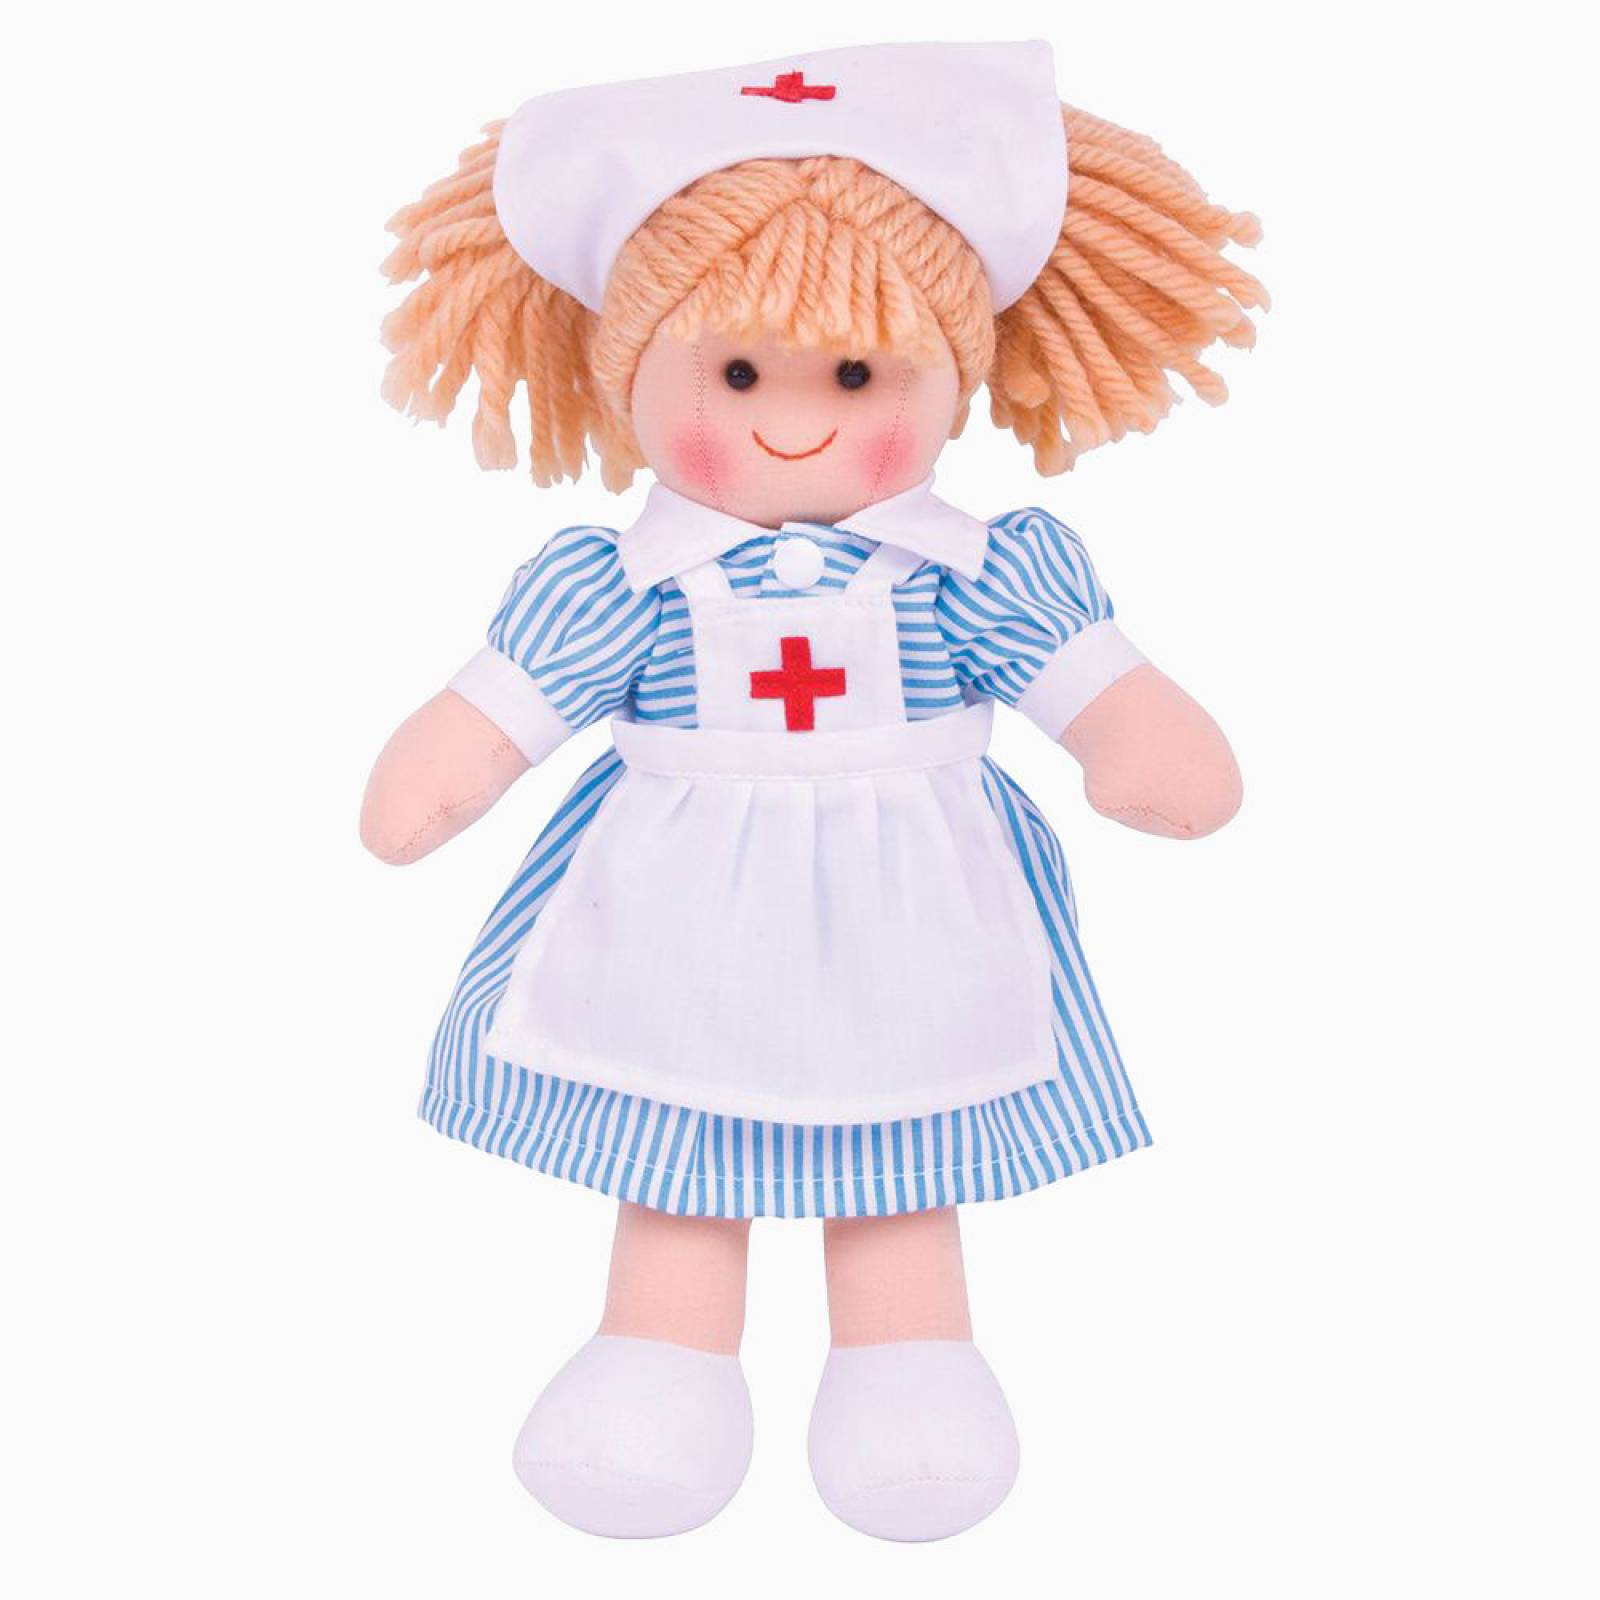 Nurse Nancy - Traditional Rag Doll 0+ thumbnails